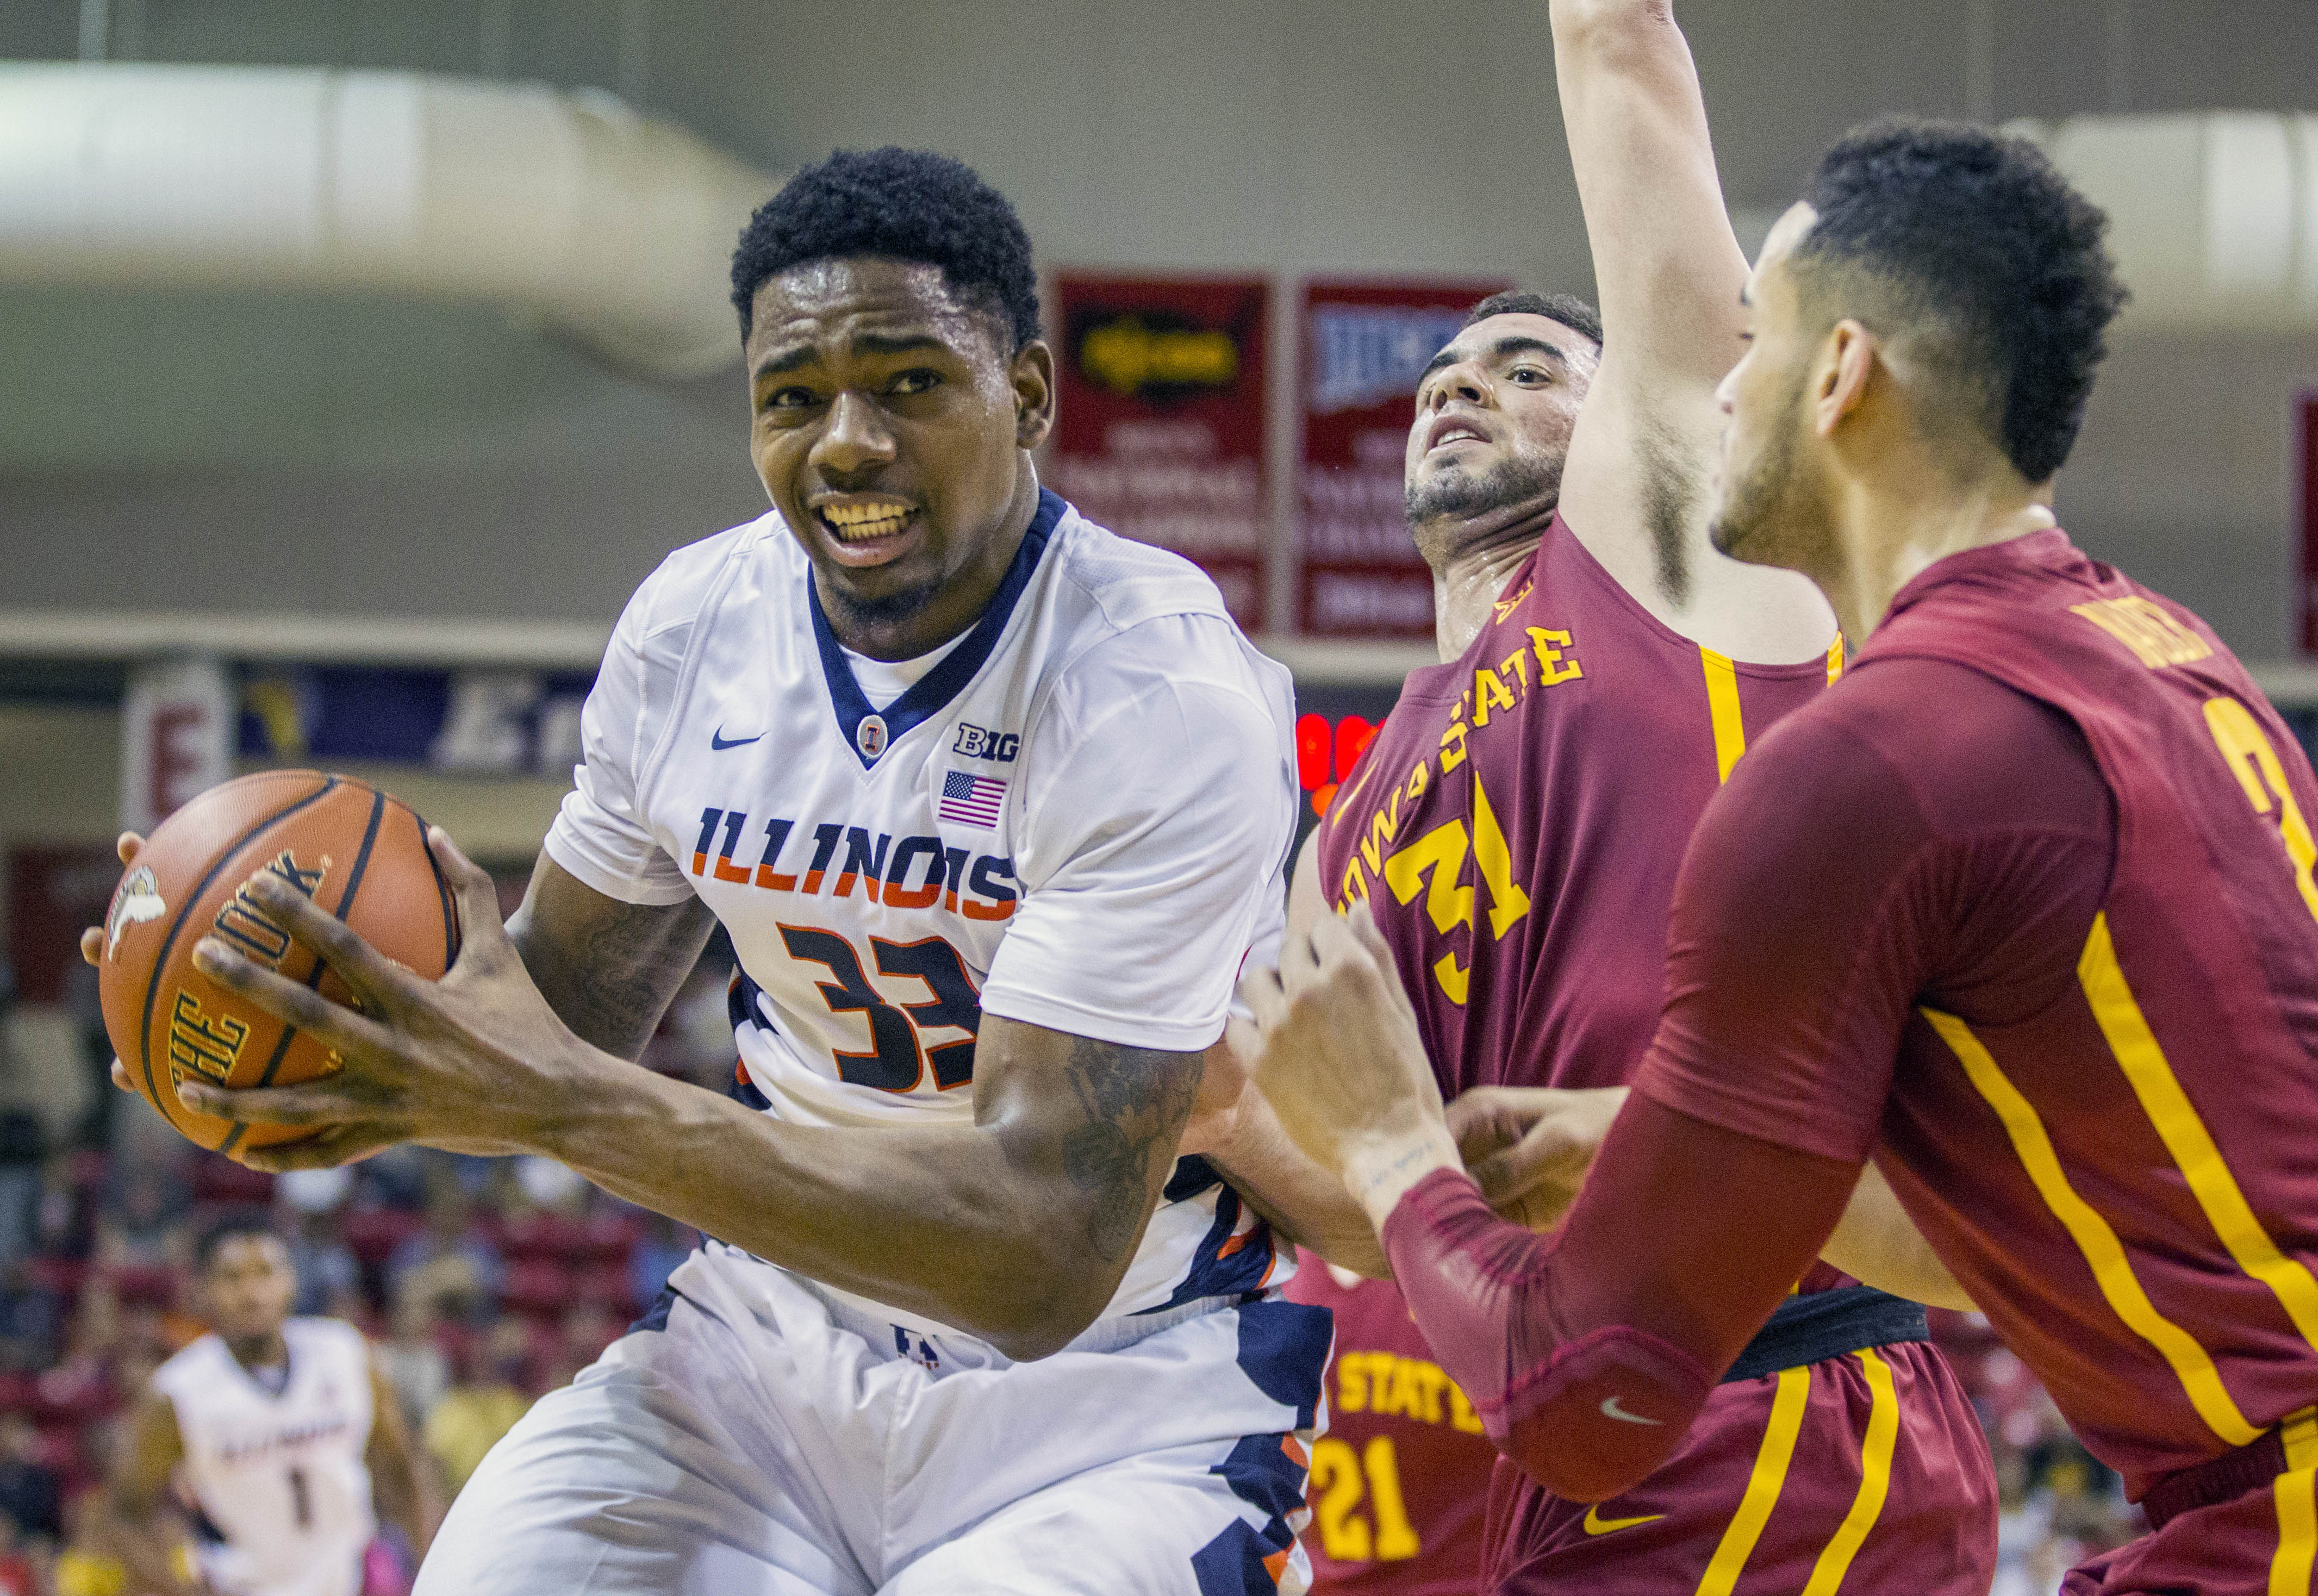 Illinois center Mike Thorne, Jr. tries to take a shot against Iowa State's Abdel Nader, right, and George Niang in the first half of an NCAA college basketball game during the Emerald Coast Classic in Niceville, Fla., Saturday, Nov. 28, 2015.  (AP Photo/M